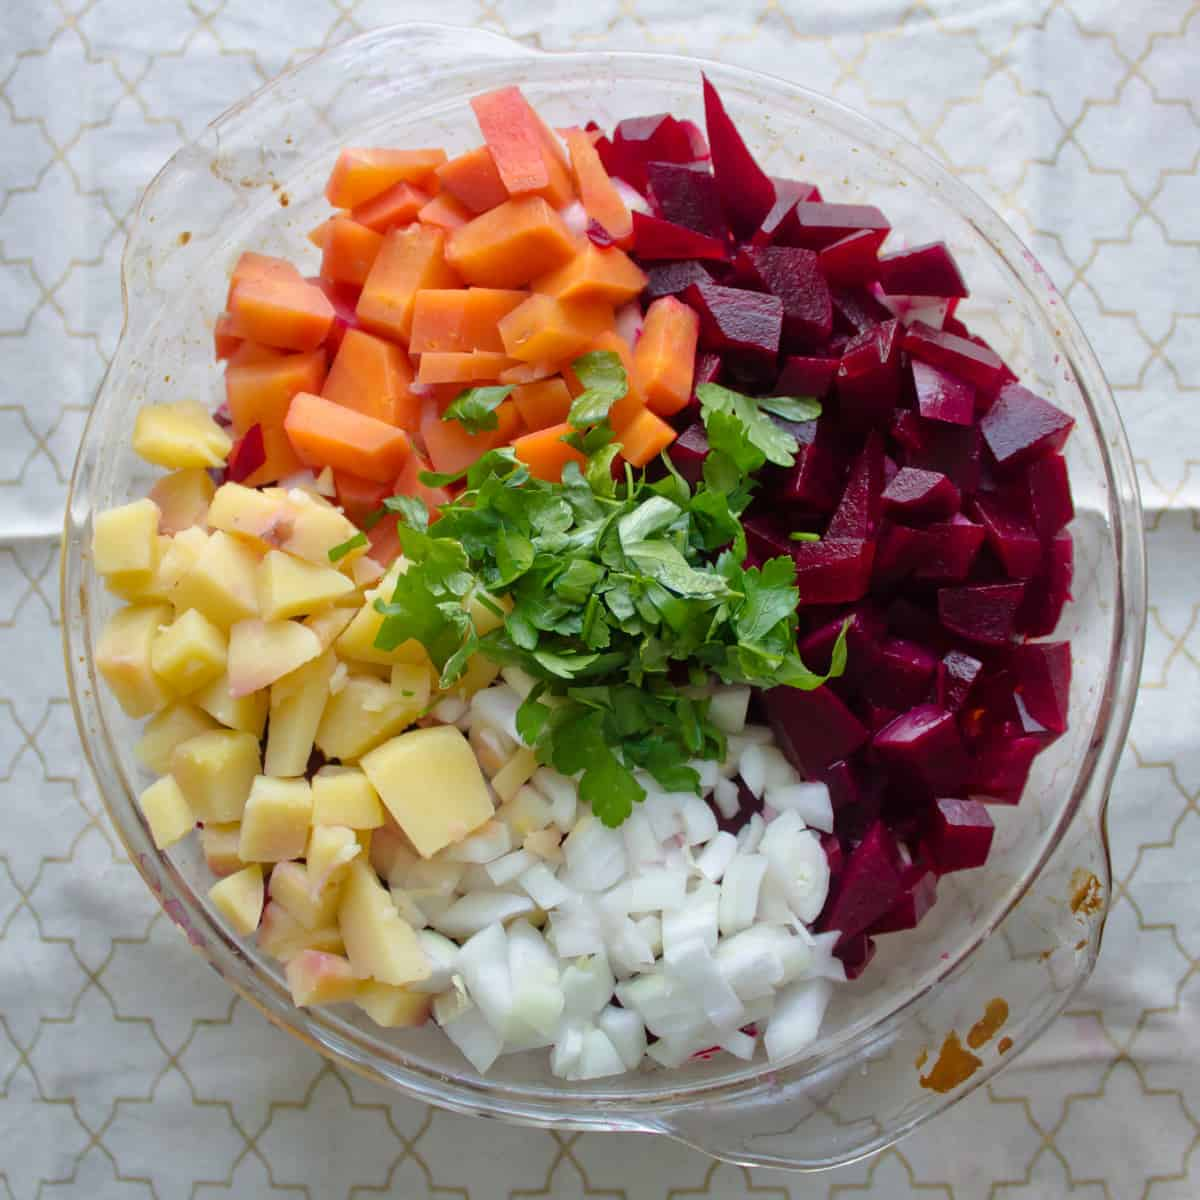 Russian root vegetable salad